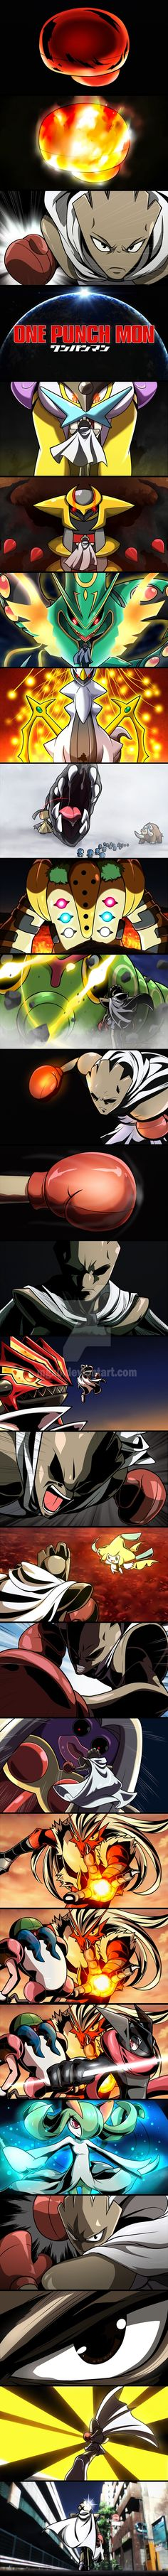 One Punch Mon